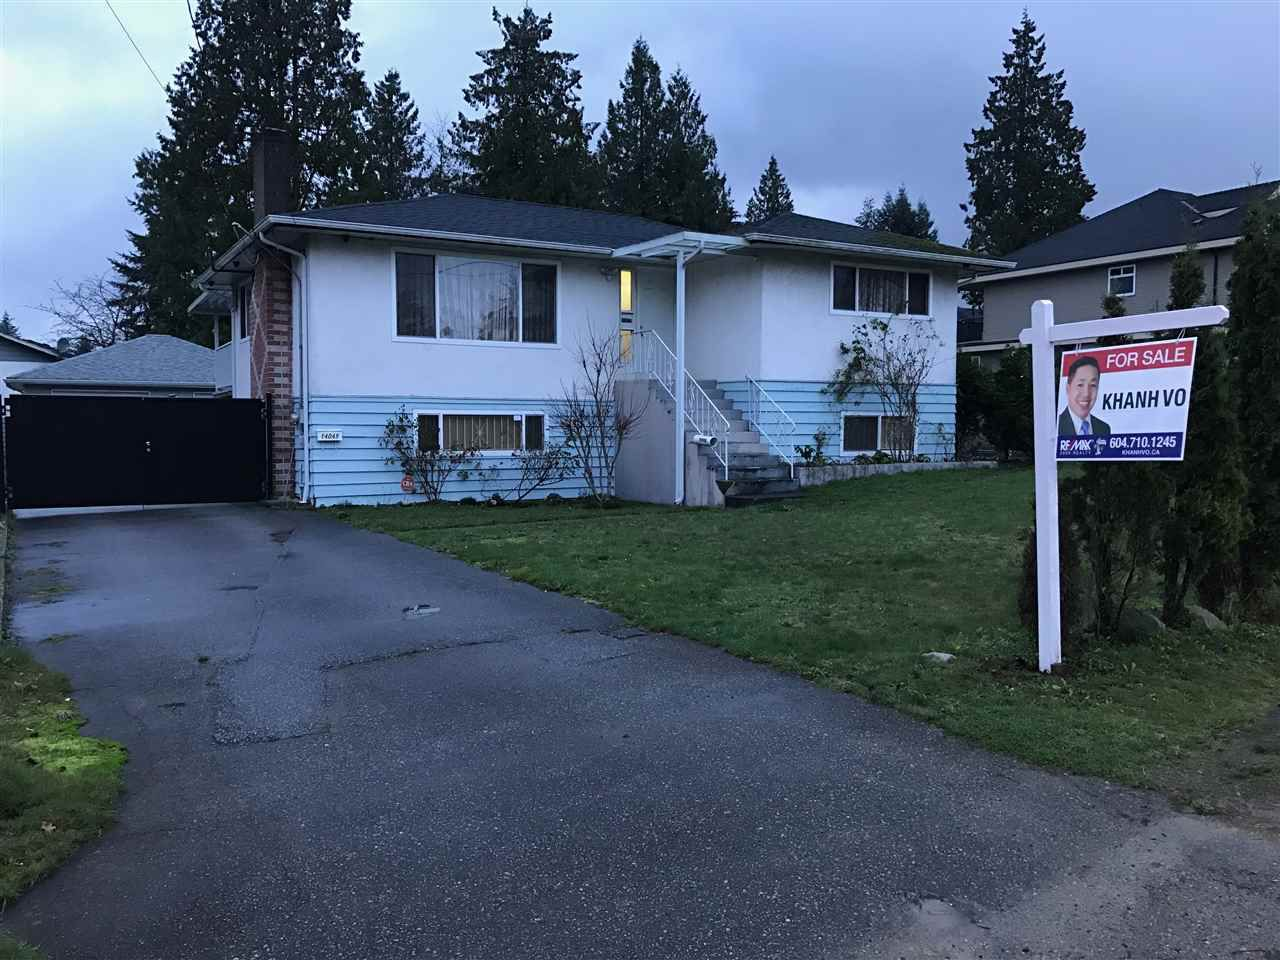 Main Photo: 14049 102A Avenue in Surrey: Whalley House for sale (North Surrey)  : MLS®# R2123092